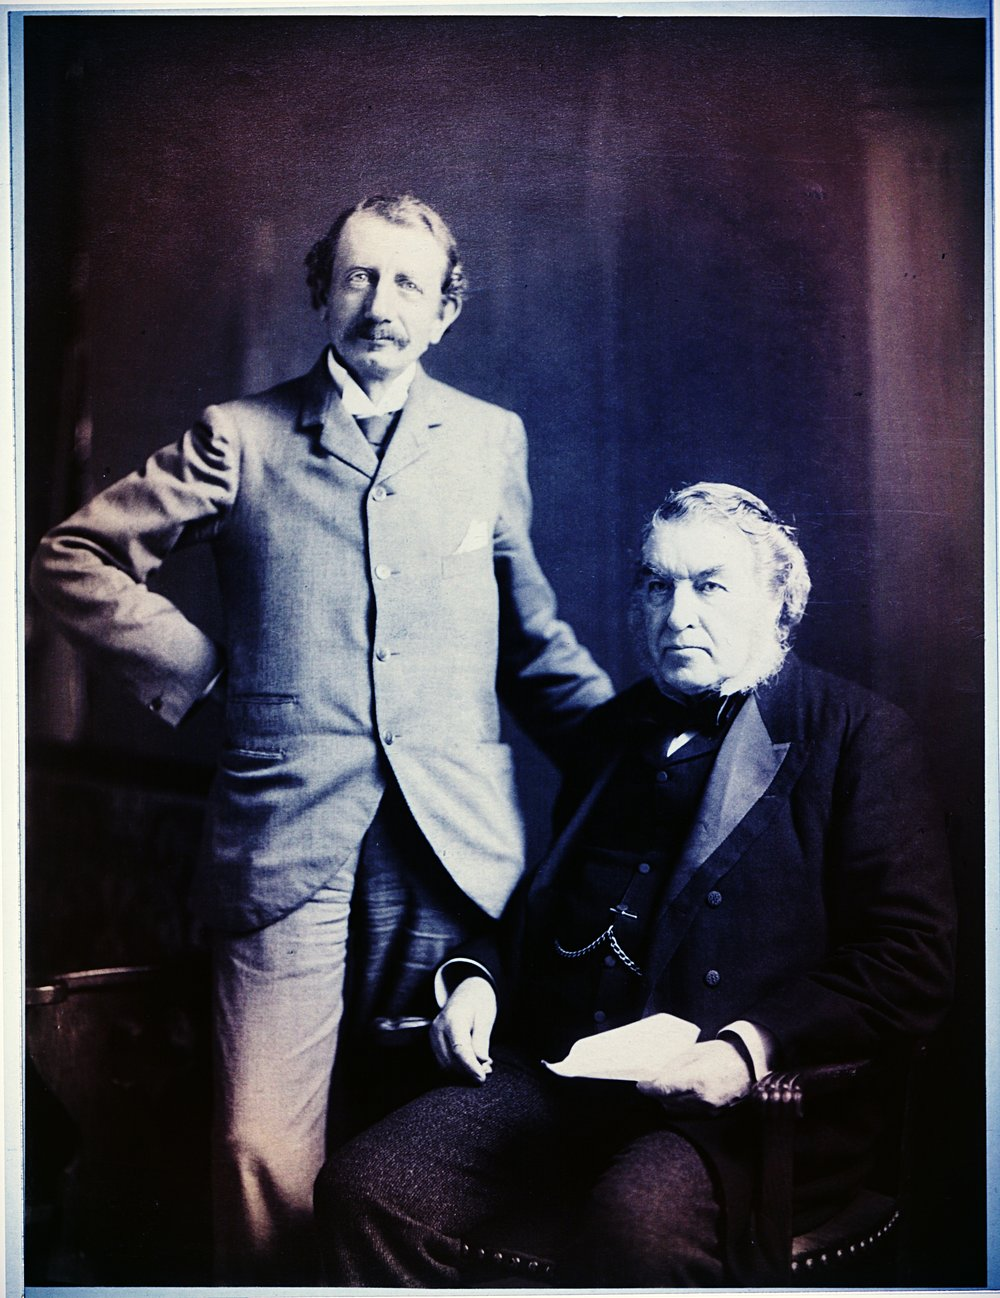 Prime Minister Charles Tupper invited Hugh to join his cabinet after Hugh started his law firm in Winnipeg with Tupper's sons. / DMVC Archives